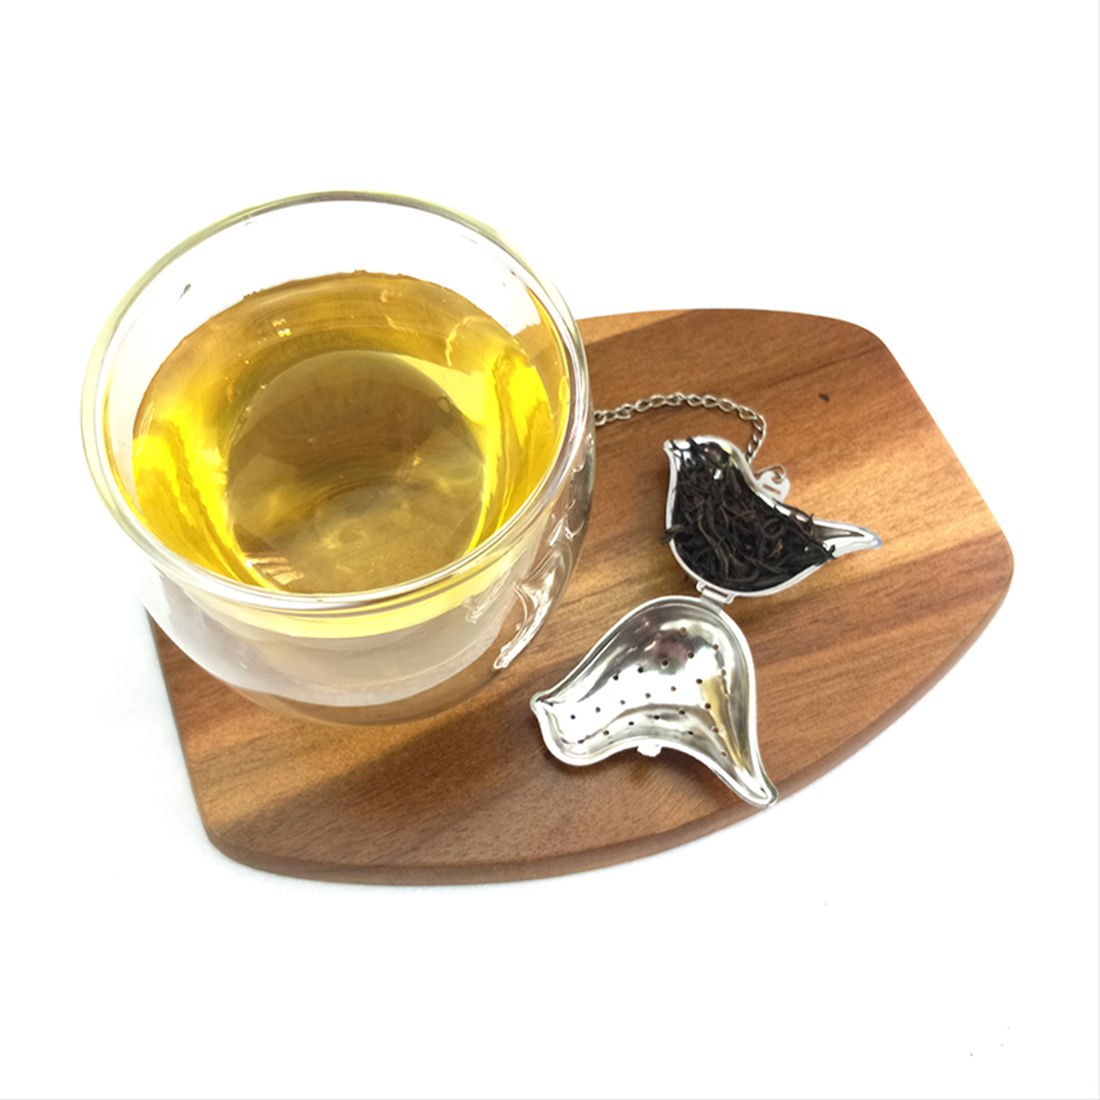 Stainless Steel Animal Shape Tea Filter